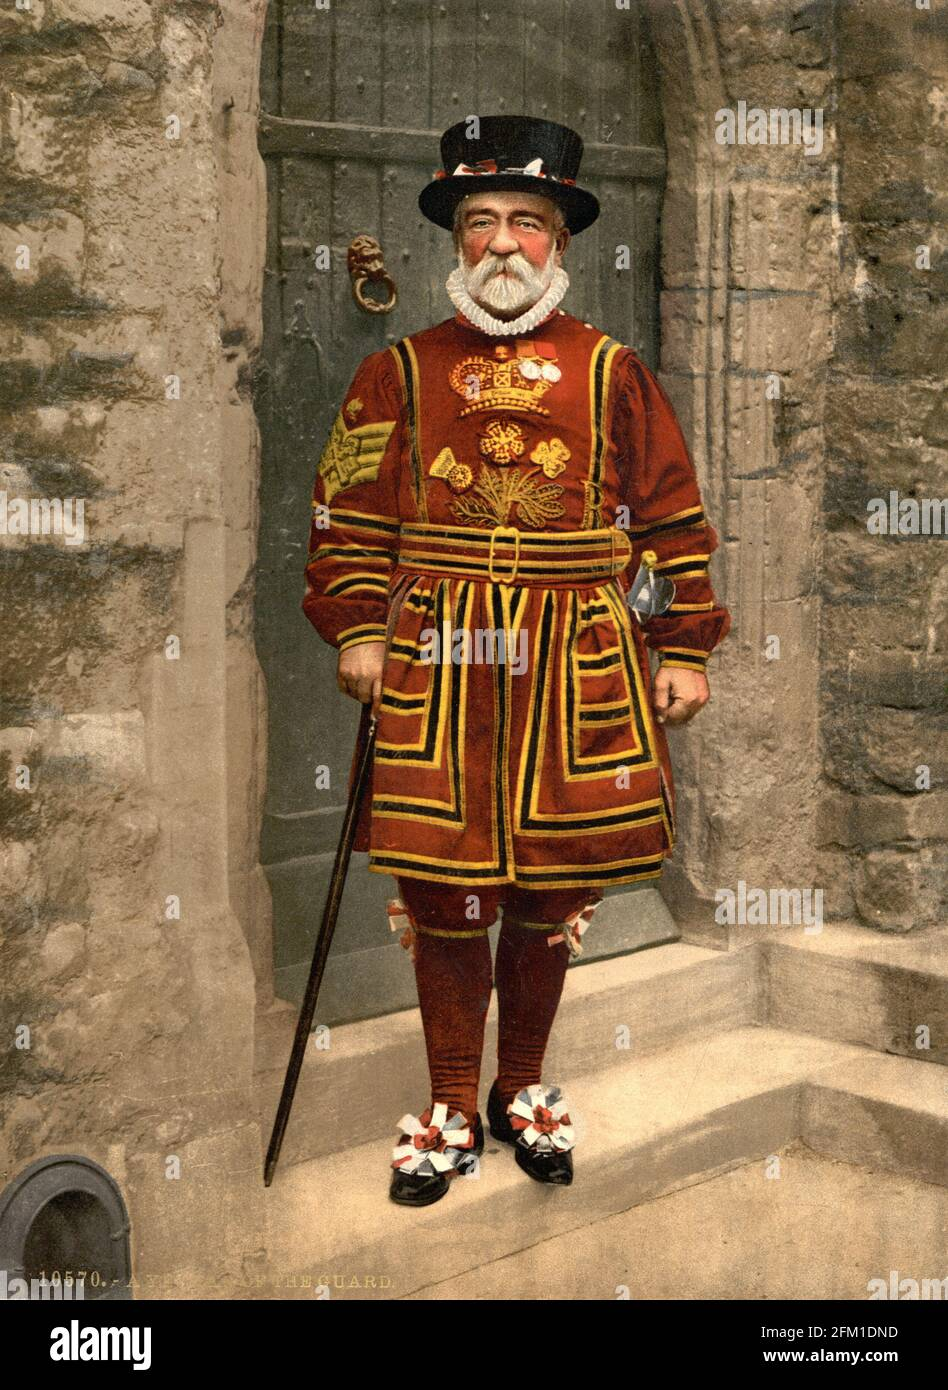 Yeoman of the Guard (Beefeater) Londres vers 1890-1900 Banque D'Images